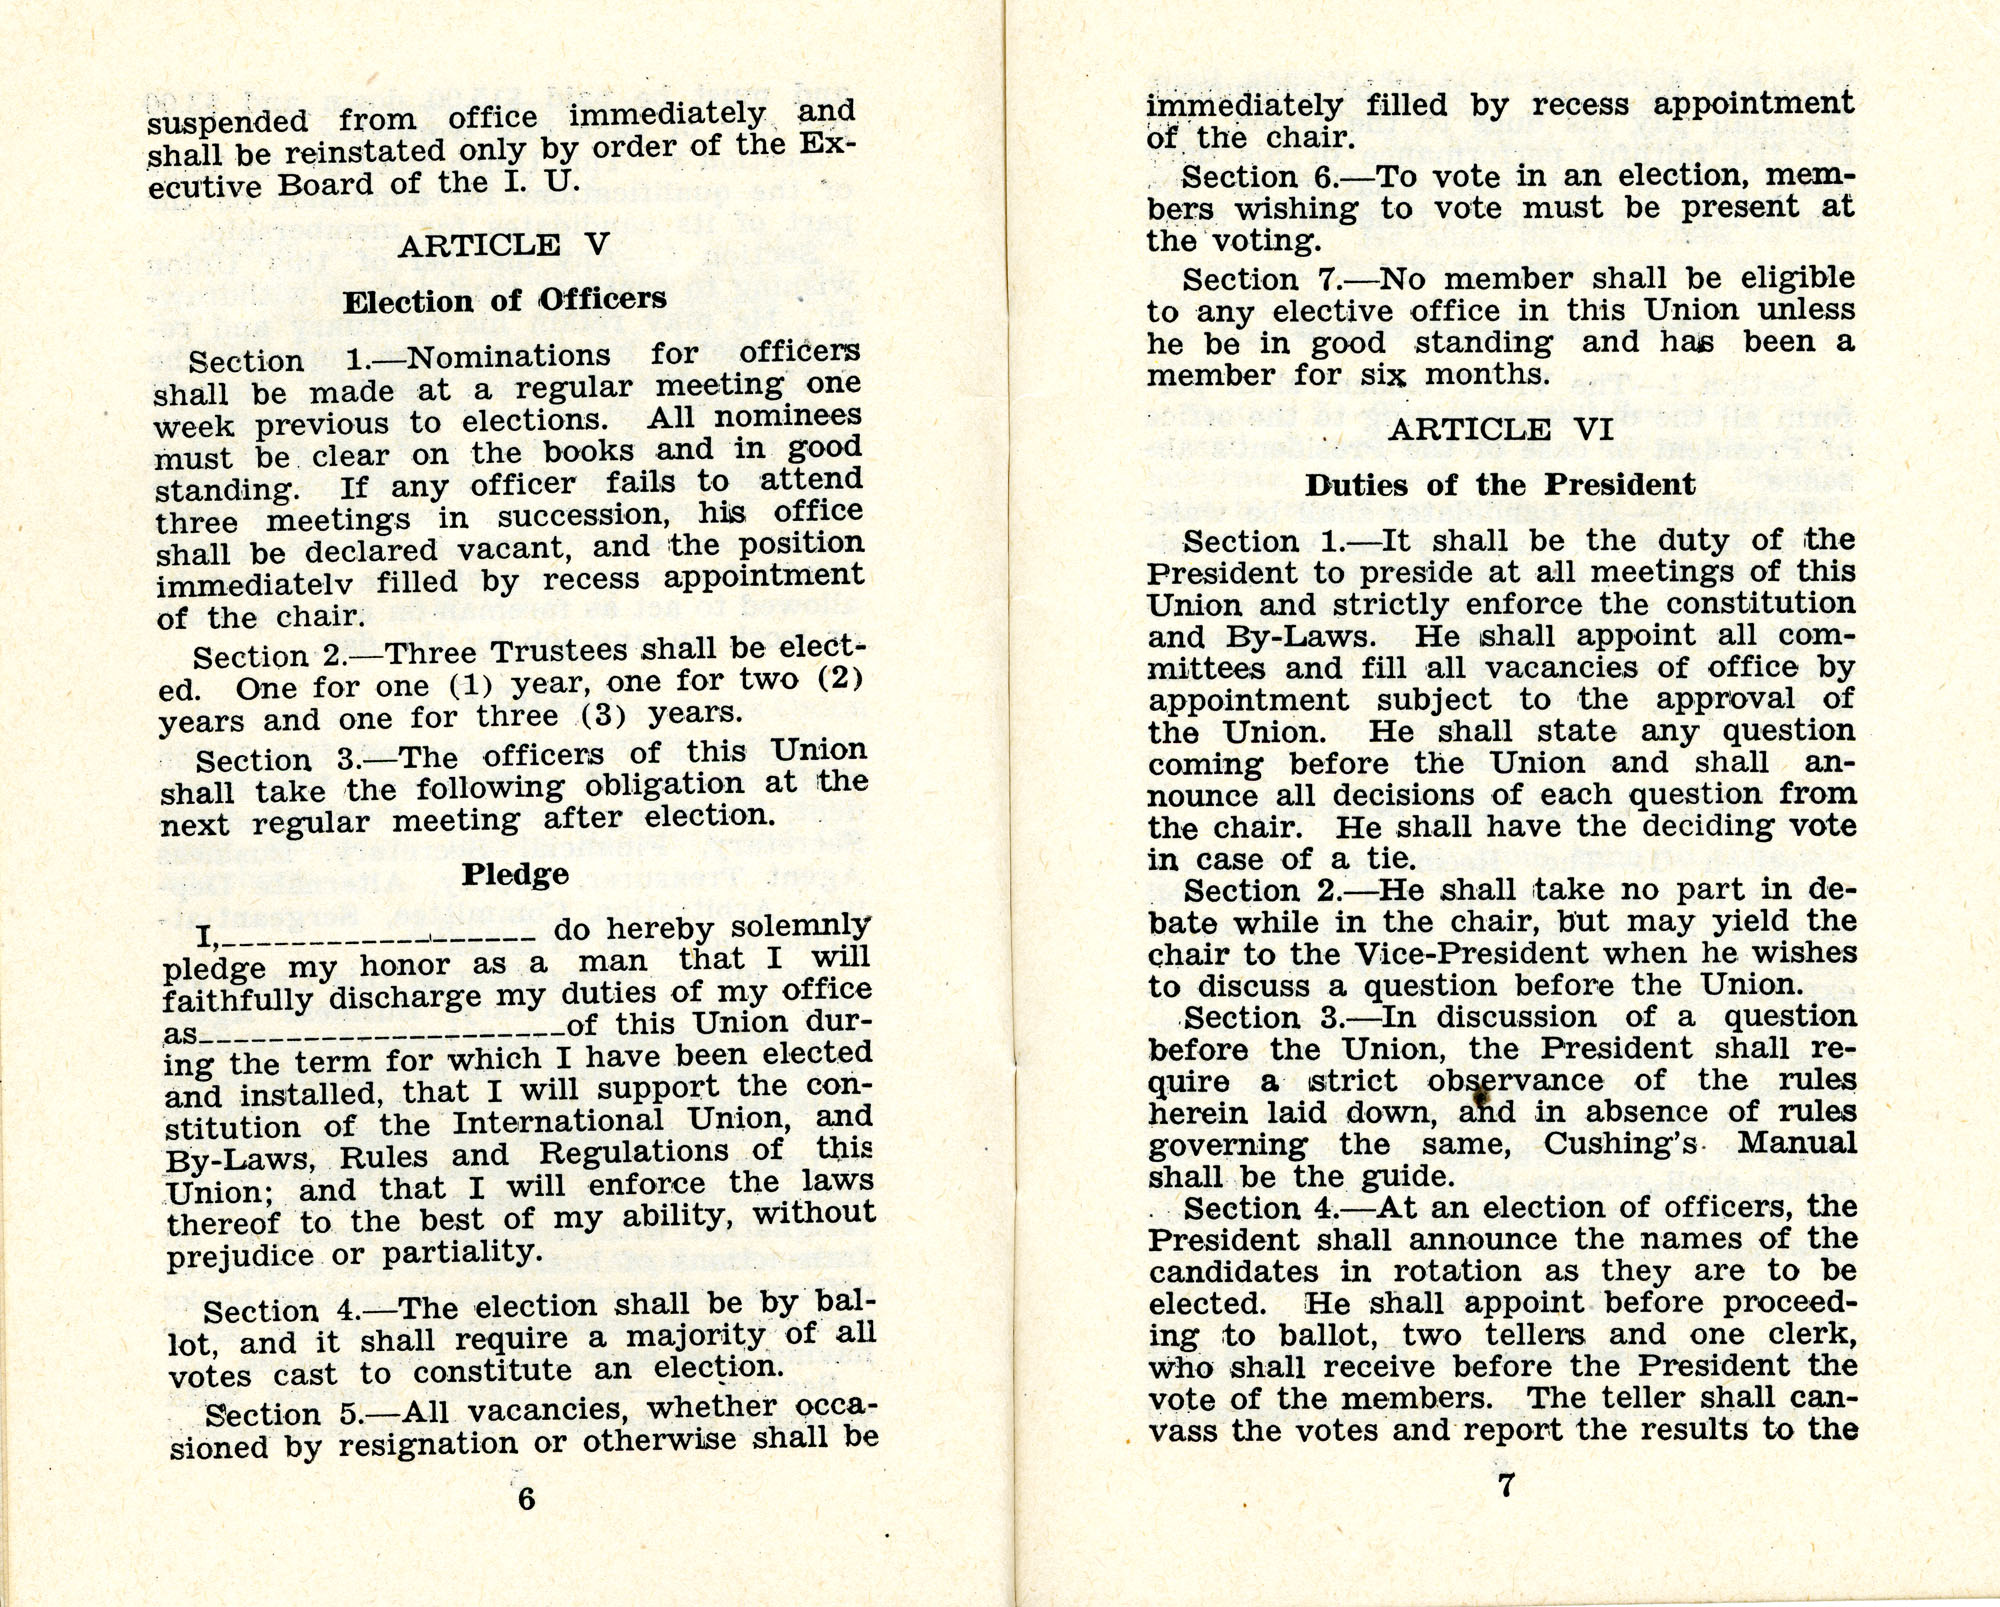 Constitution and by-laws of unions no.1 and 10, Page 4